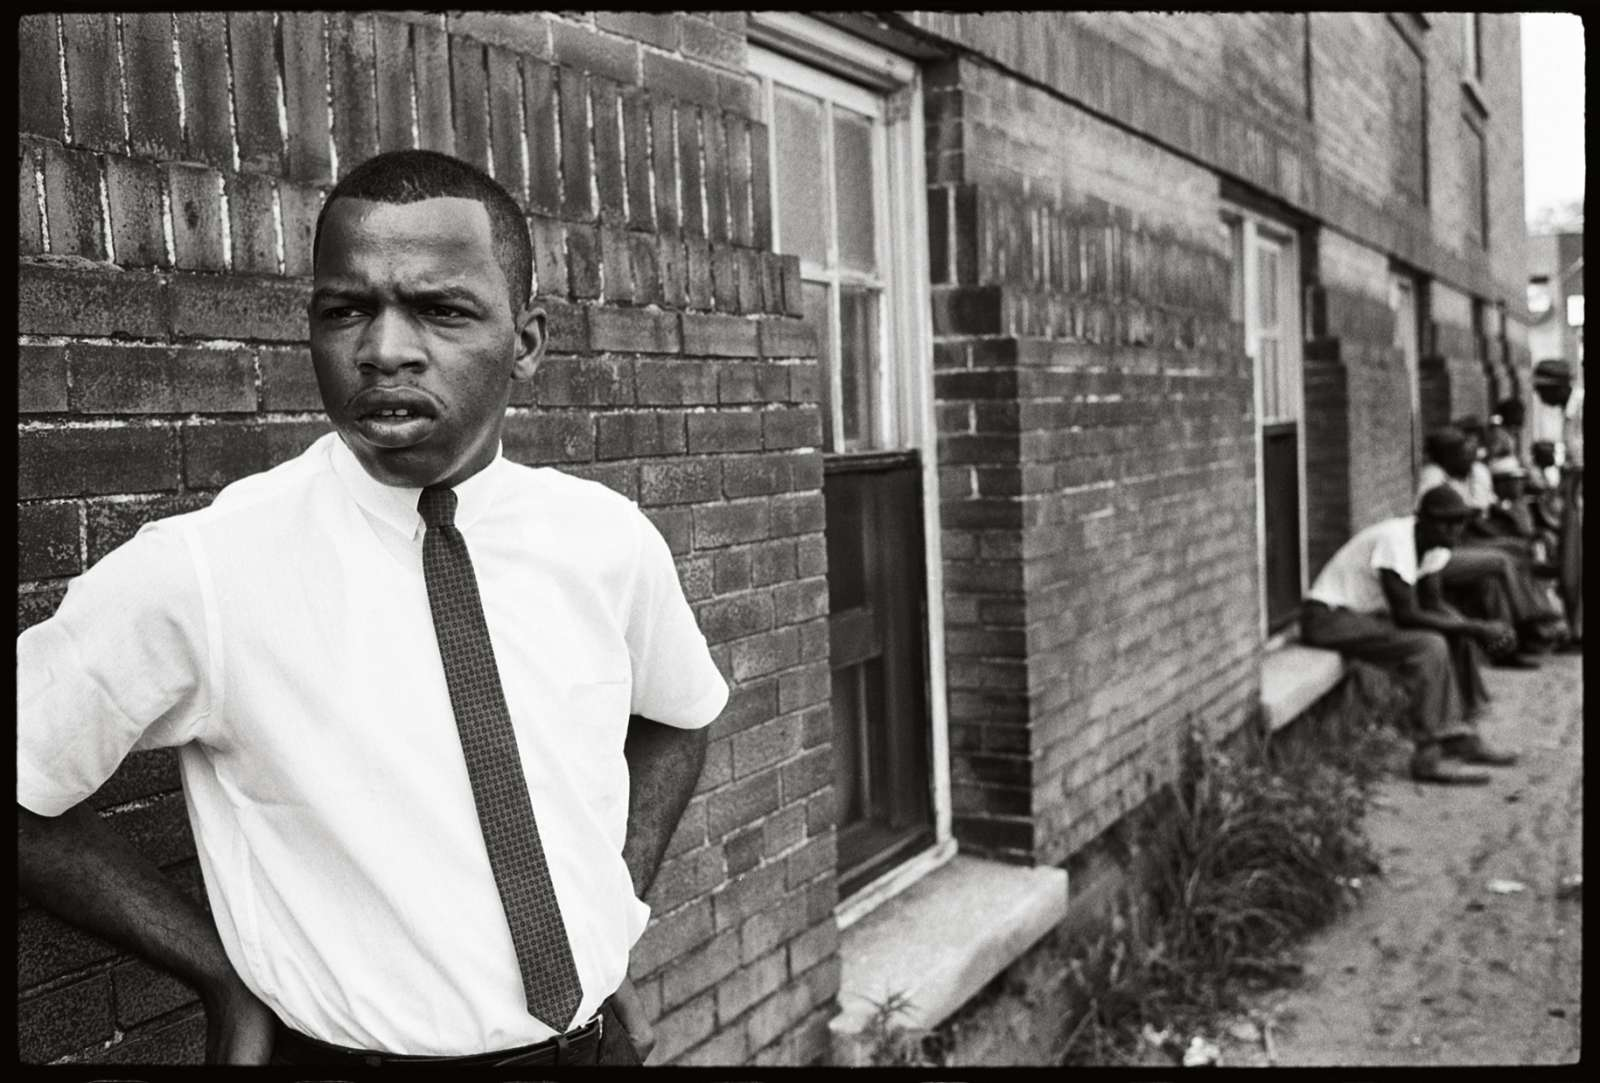 Photographer Steve Schapiro on capturing moments of John Lewis during the Civil Rights Movement